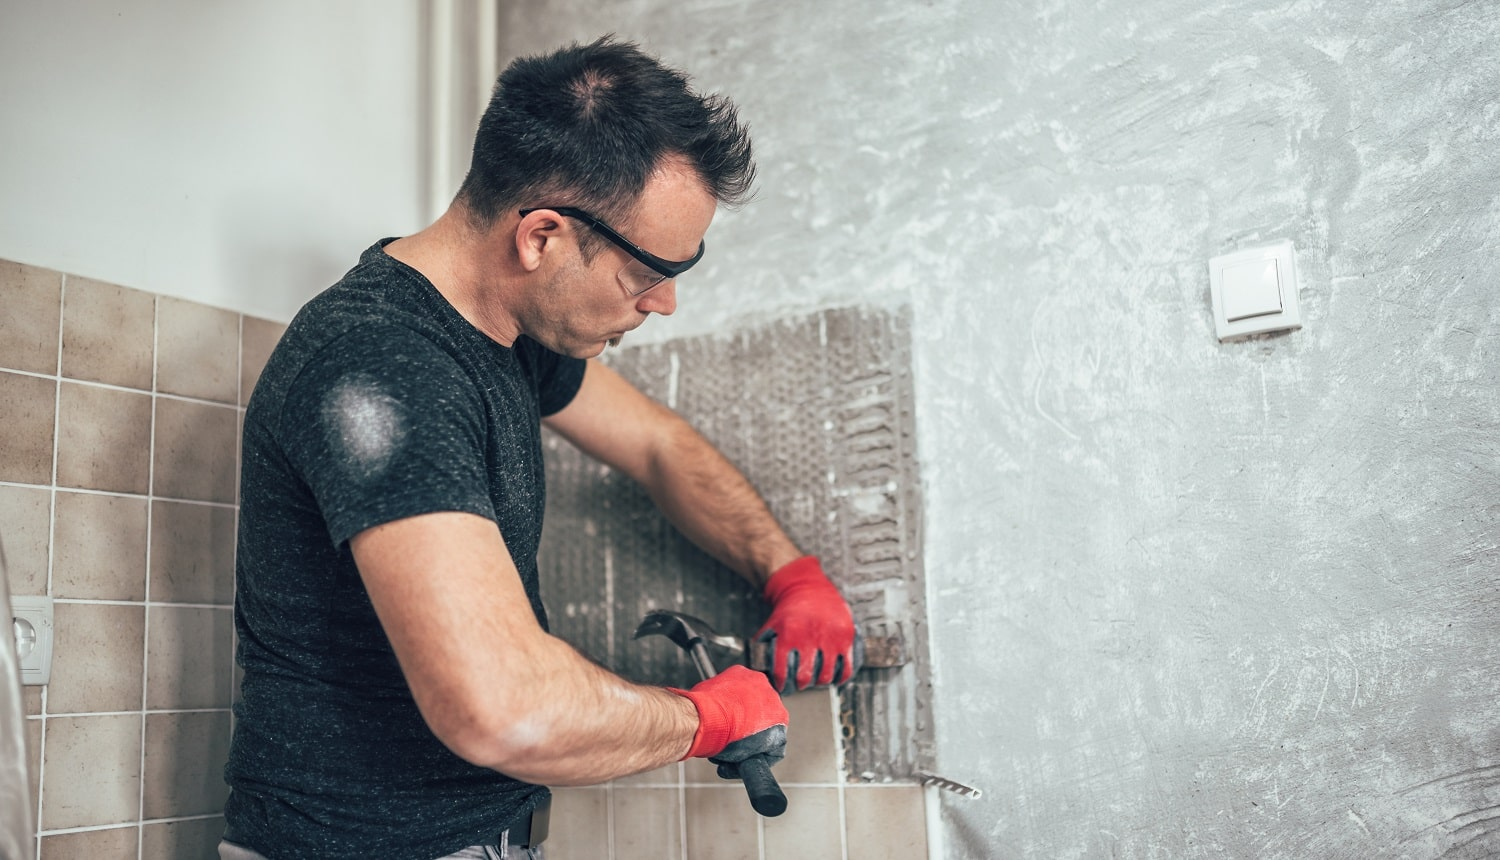 Man wearing red safety gloves removing wall tails in the kitchen